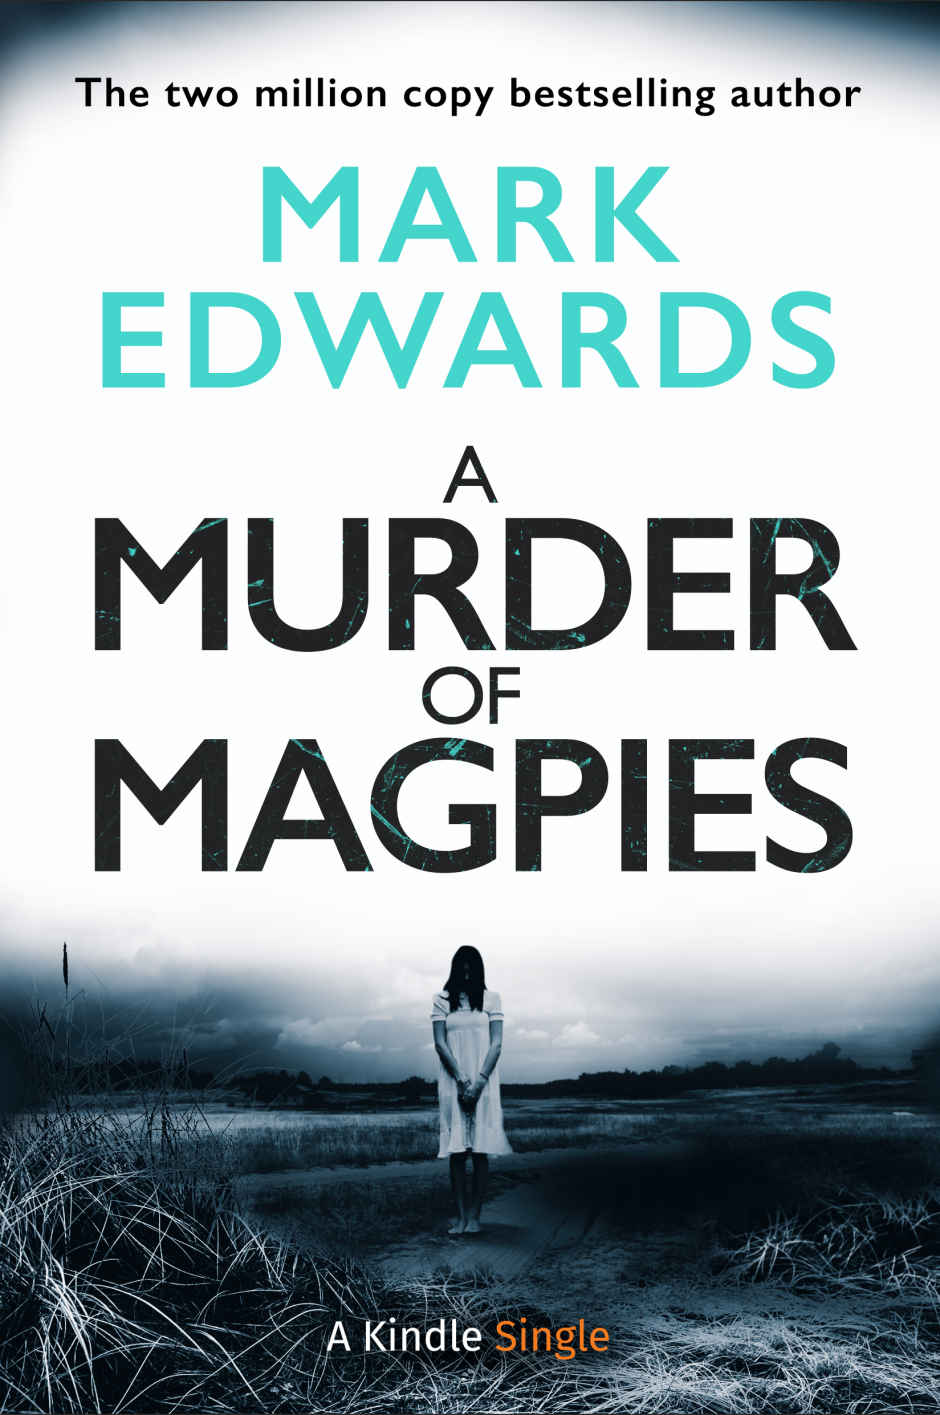 A Murder of Magpies - Mark Edwards [kindle] [mobi]